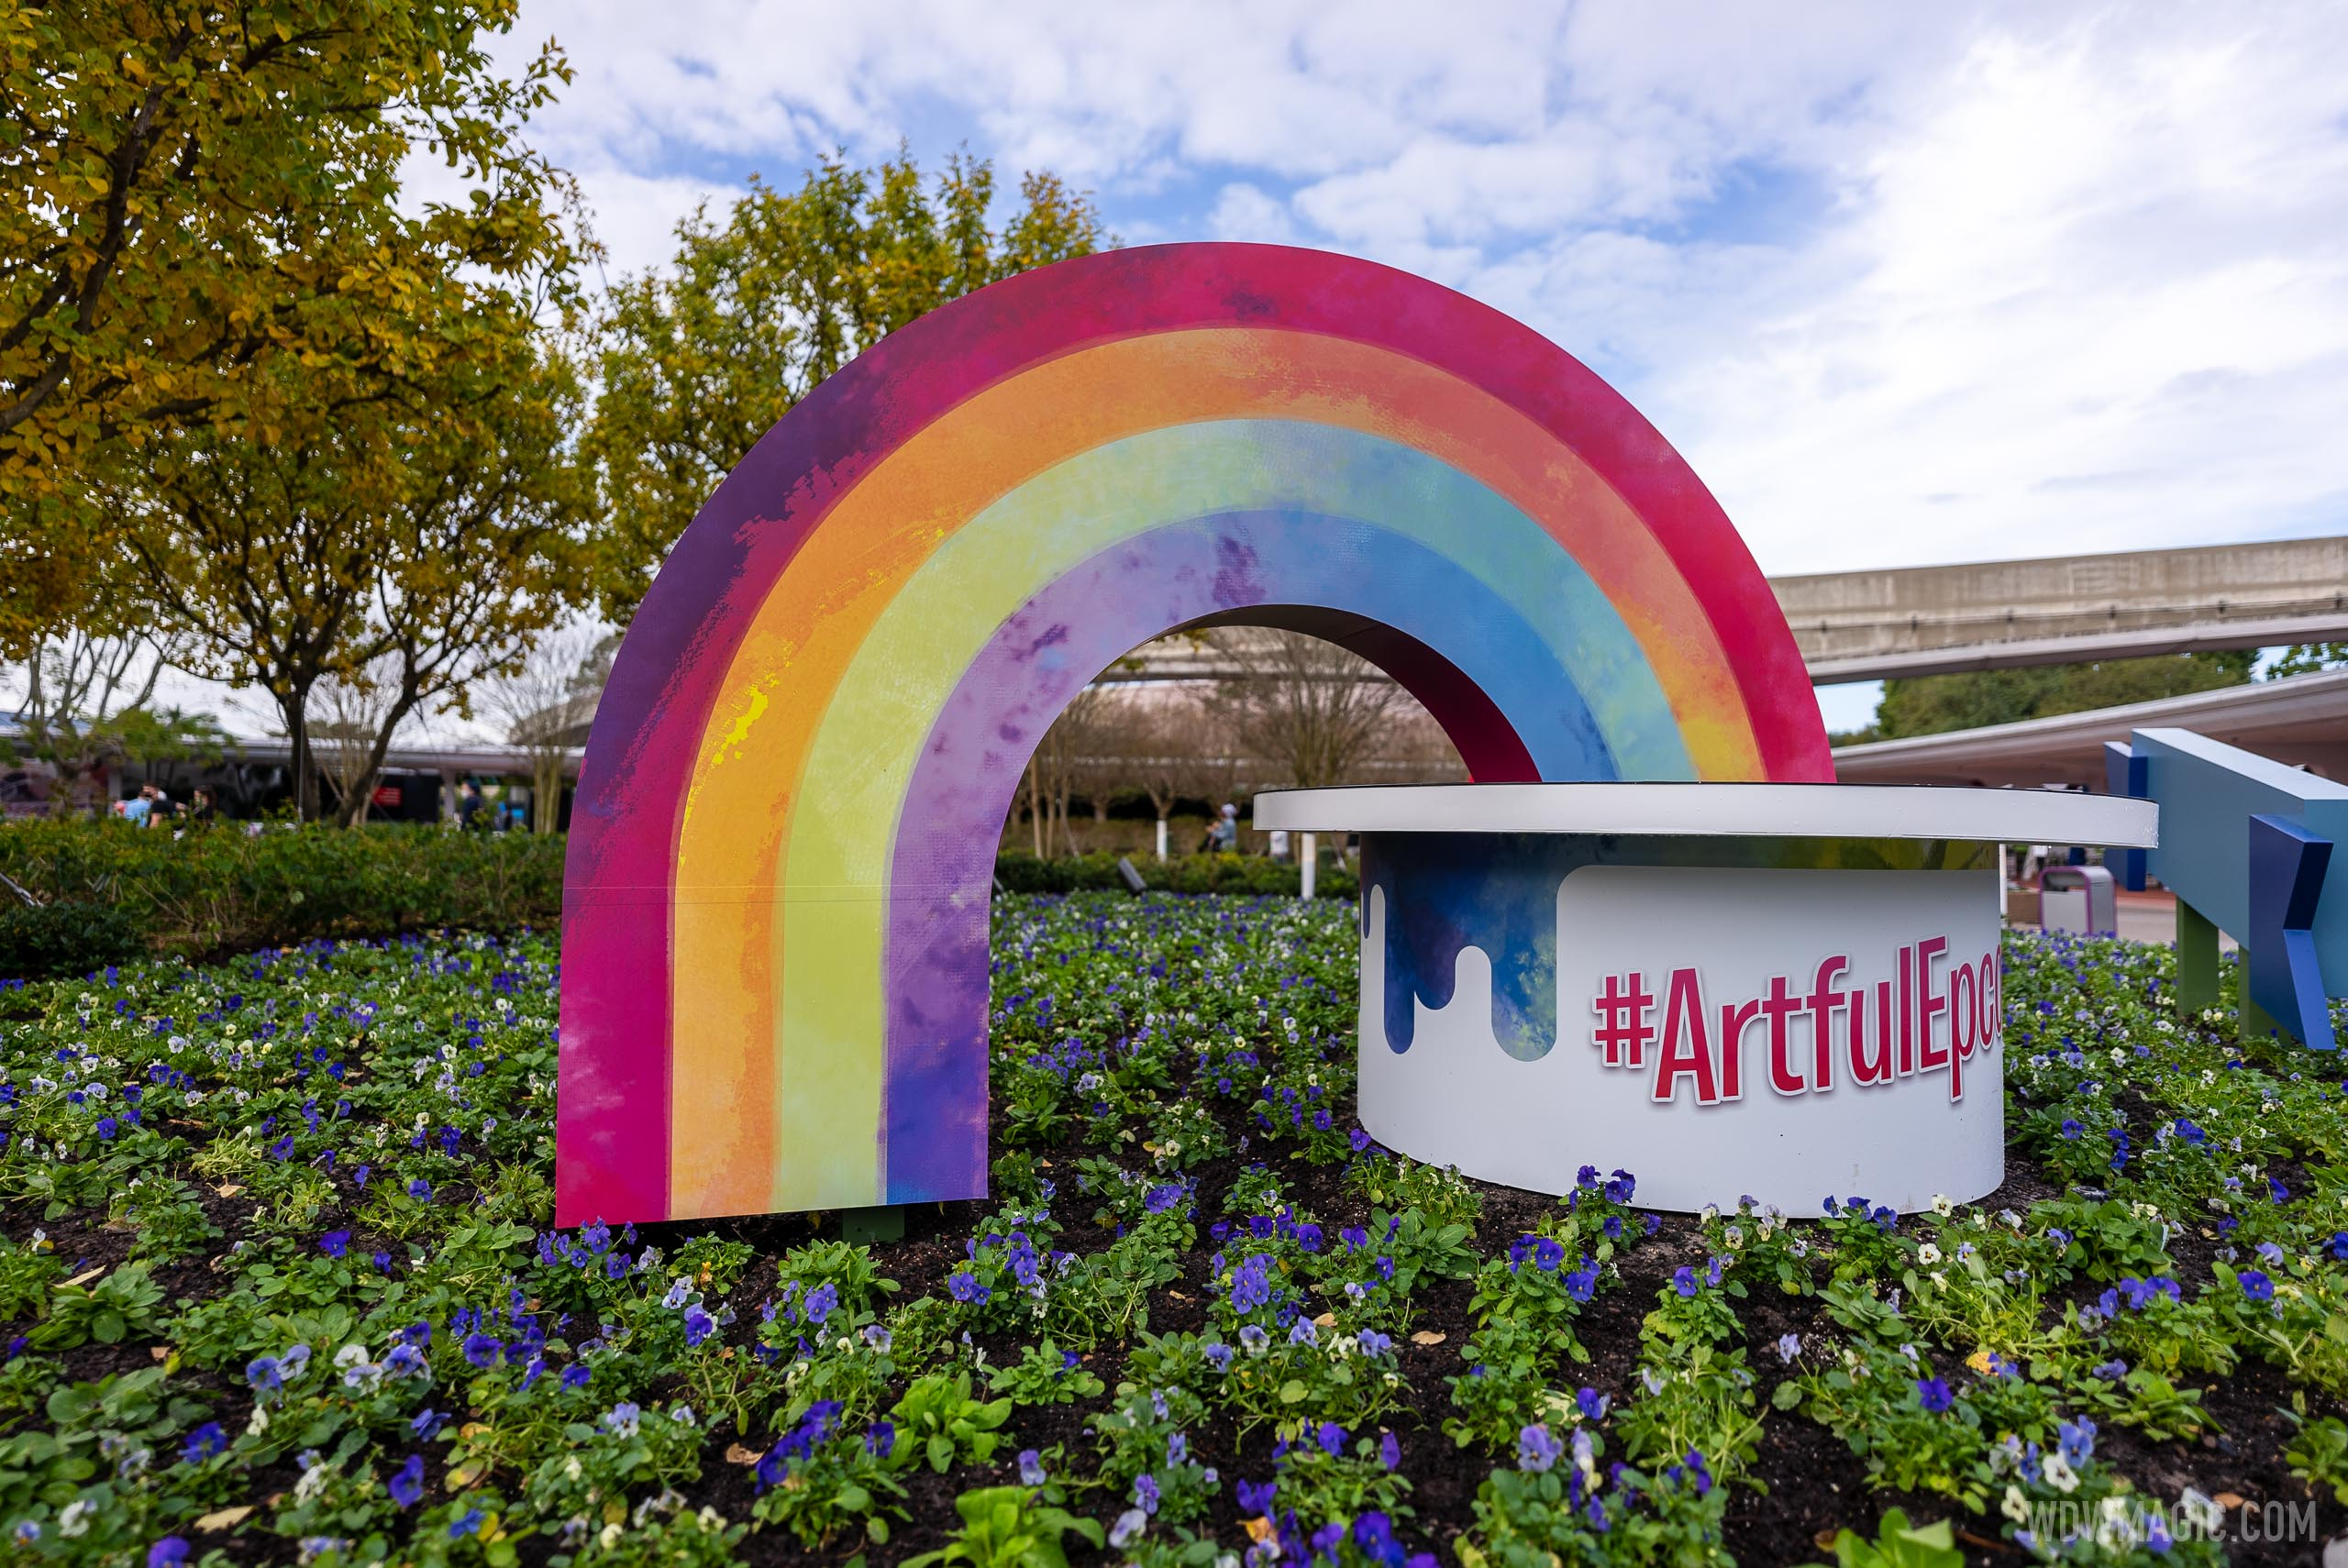 2021 Taste of the Epcot International Festival of the Arts